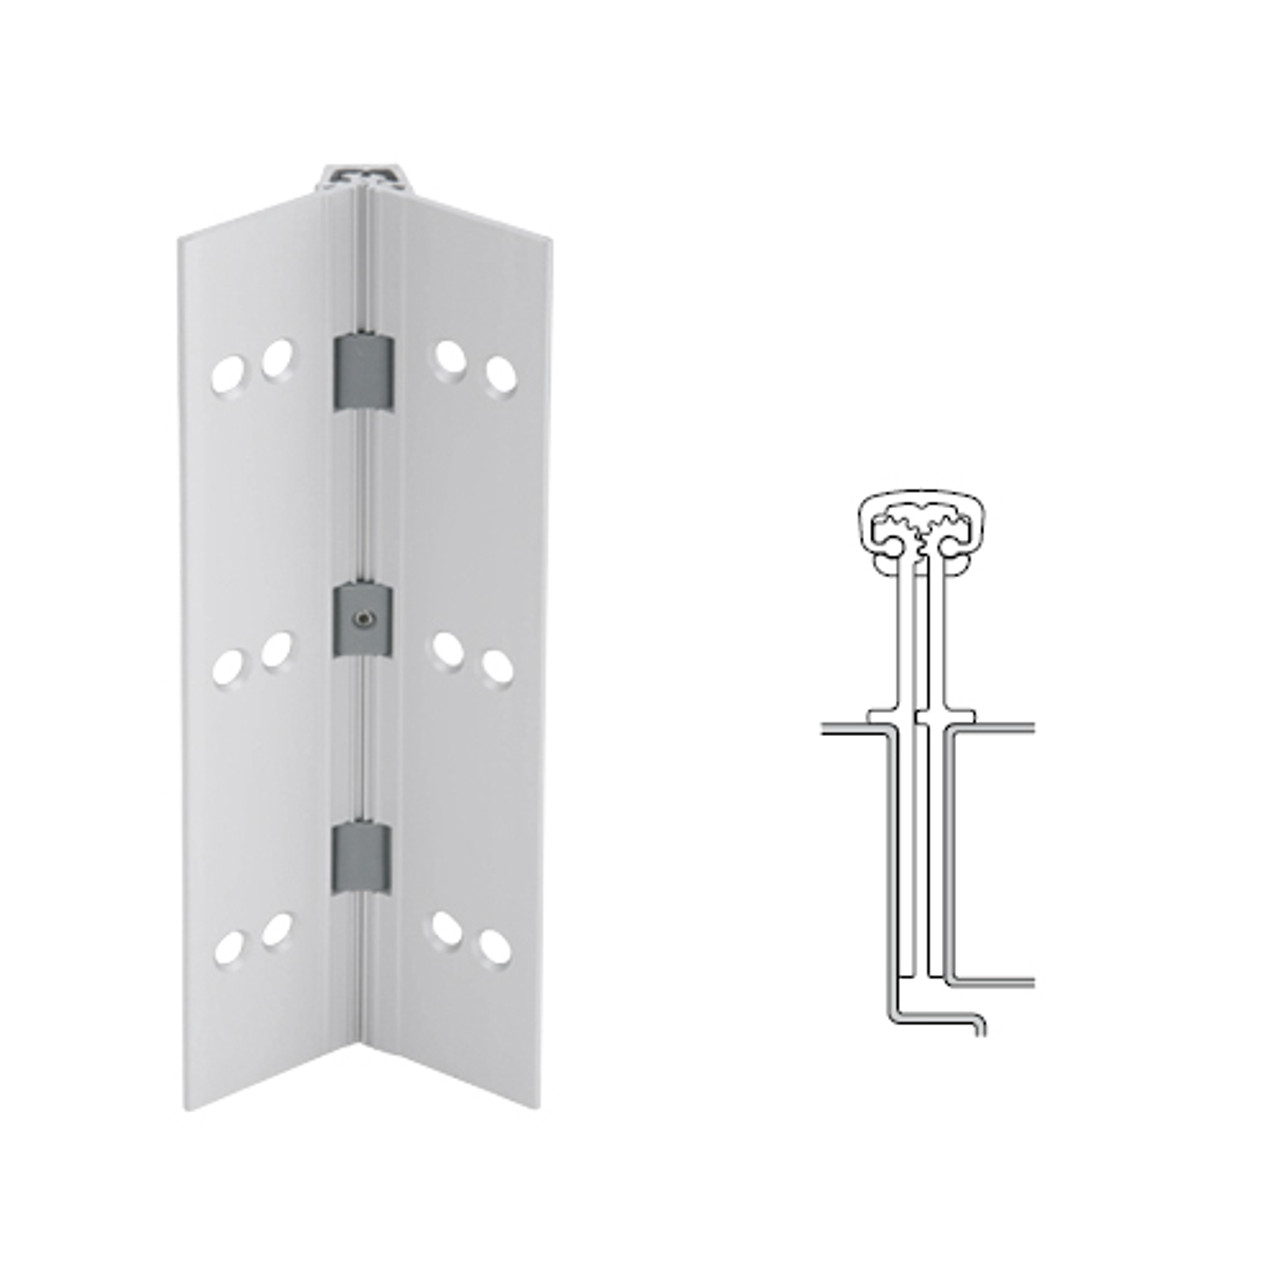 040XY-US28-120-HT IVES Full Mortise Continuous Geared Hinges with Hospital Tip in Satin Aluminum